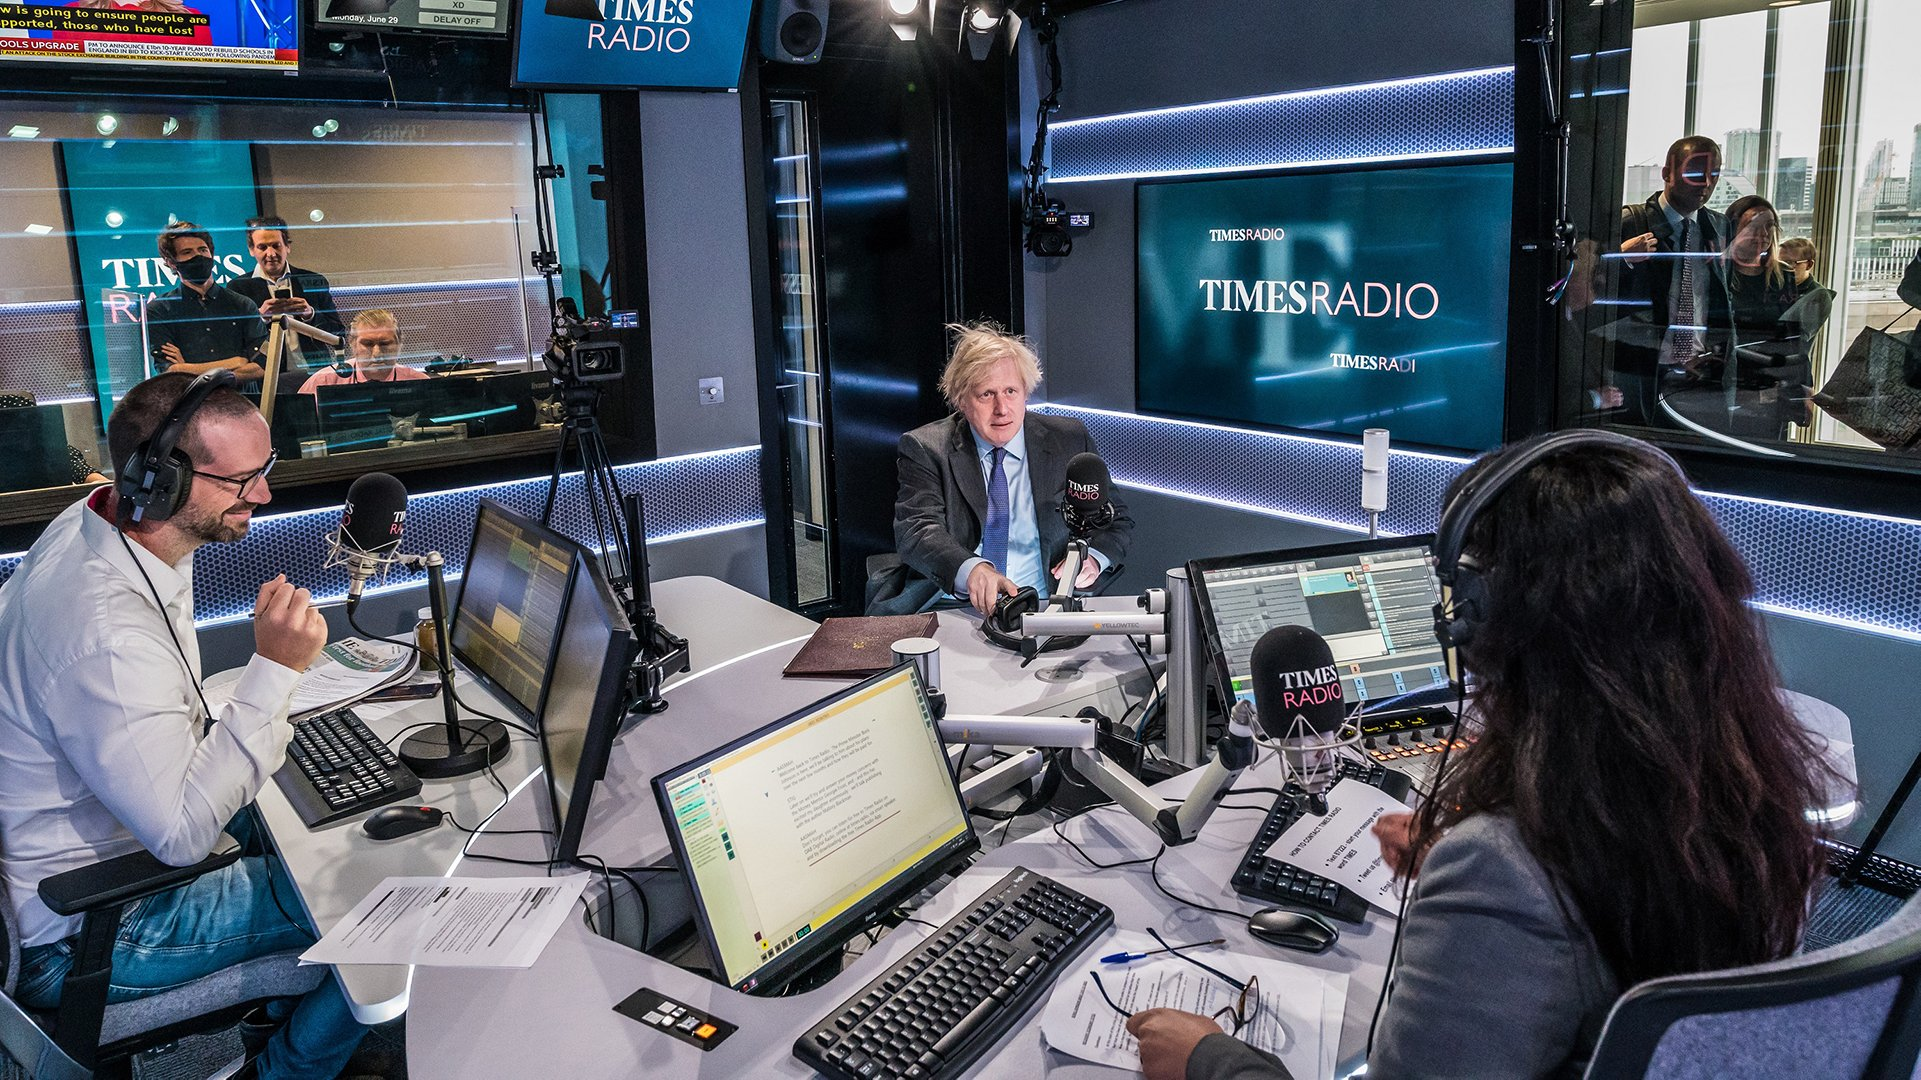 British Prime Minister Boris Johnson being interviewed in the Times Radio studio on launch day